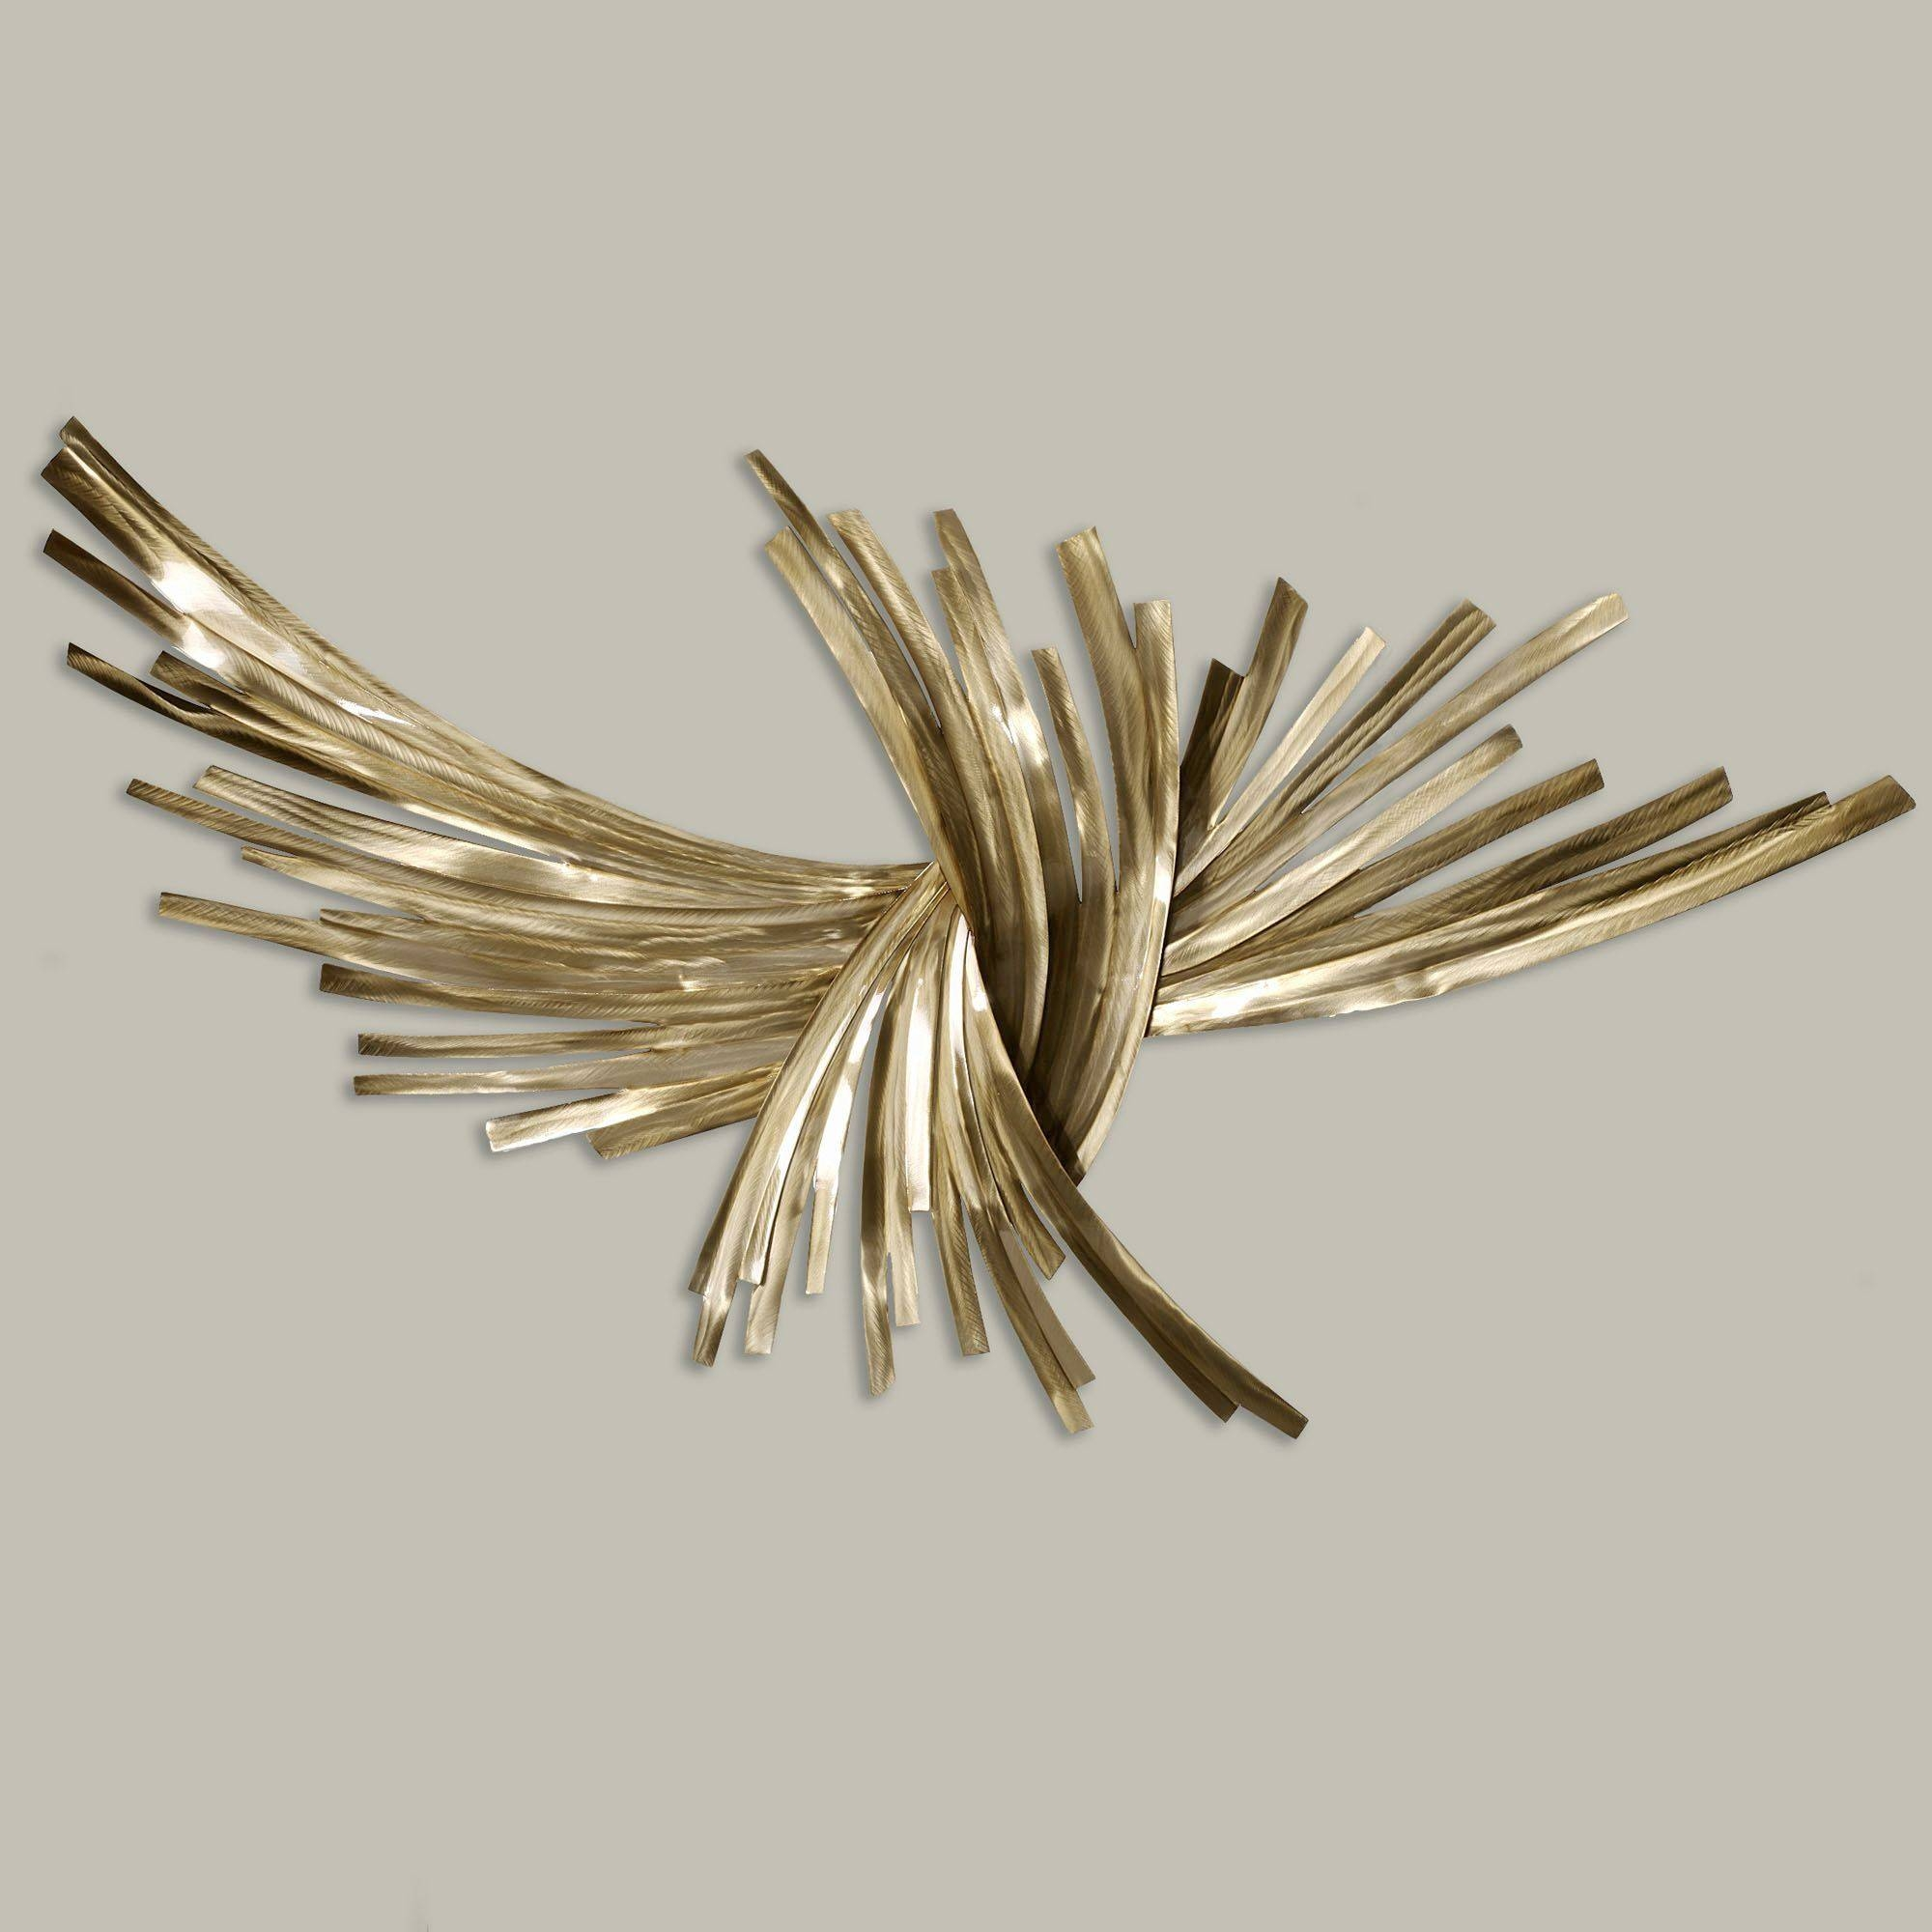 Contemporary Metal Wall Art Sculptures | Touch Of Class With Regard To 2017 Contemporary Metal Wall Art Sculpture (View 7 of 20)